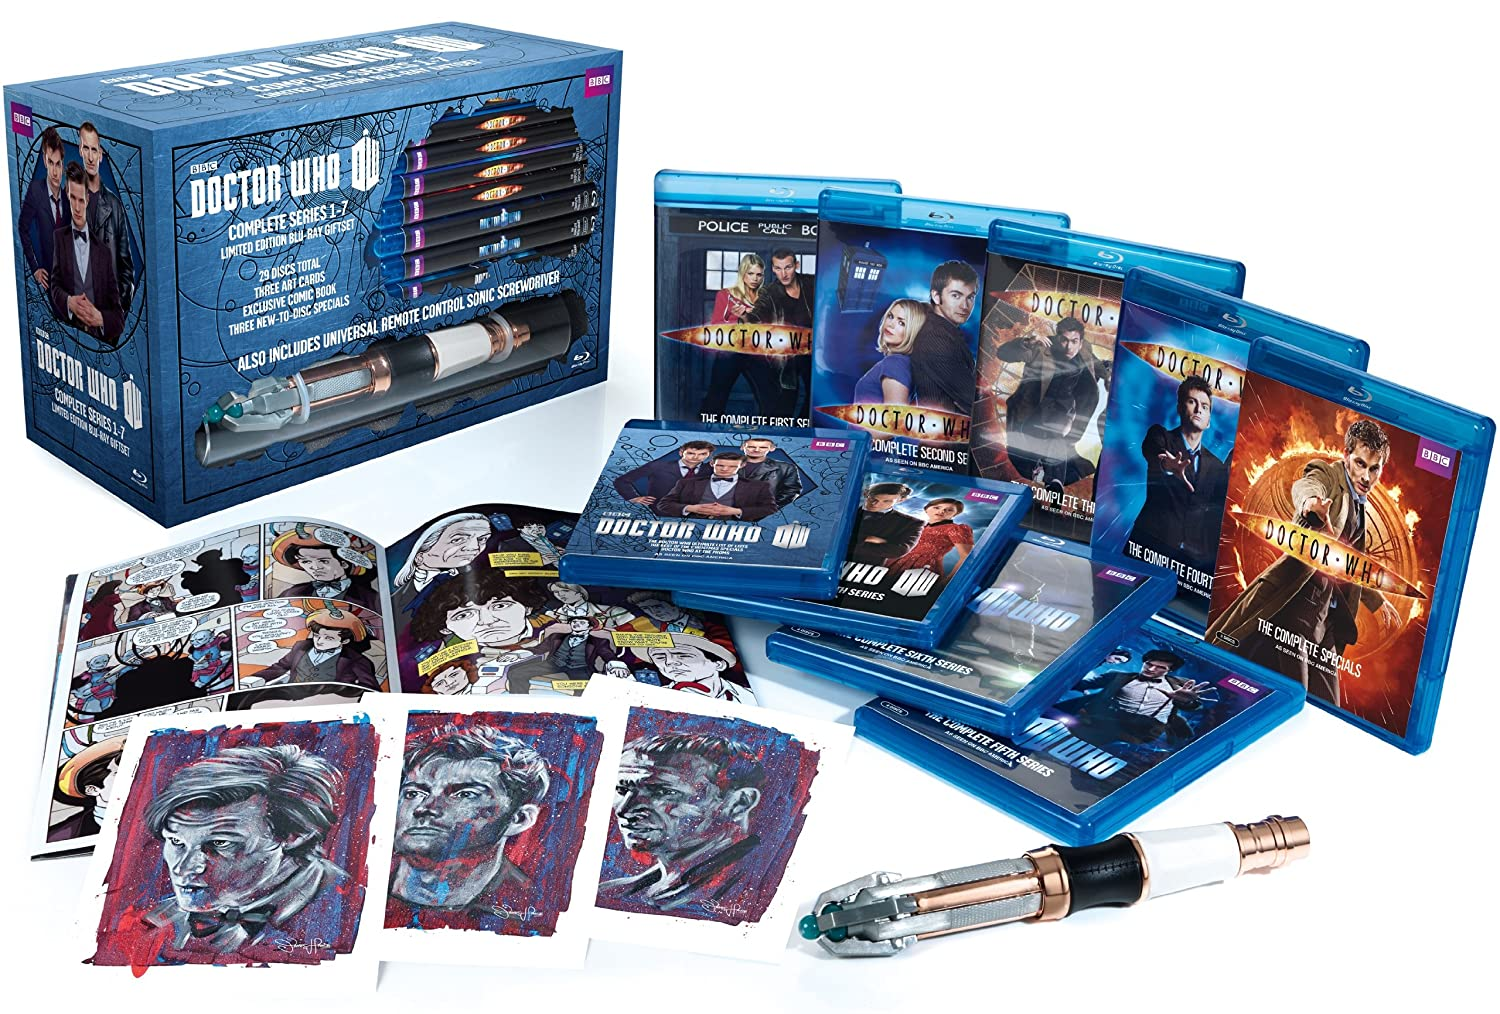 Amazon.com Doctor Who Series 1-7 Limited Edition Blu-ray Giftset Matt Smith David Tennant Christopher Eccleston Jenna-Louise Coleman Various Movies ...  sc 1 st  Amazon.com & Amazon.com: Doctor Who: Series 1-7 Limited Edition Blu-ray Giftset ... Aboutintivar.Com